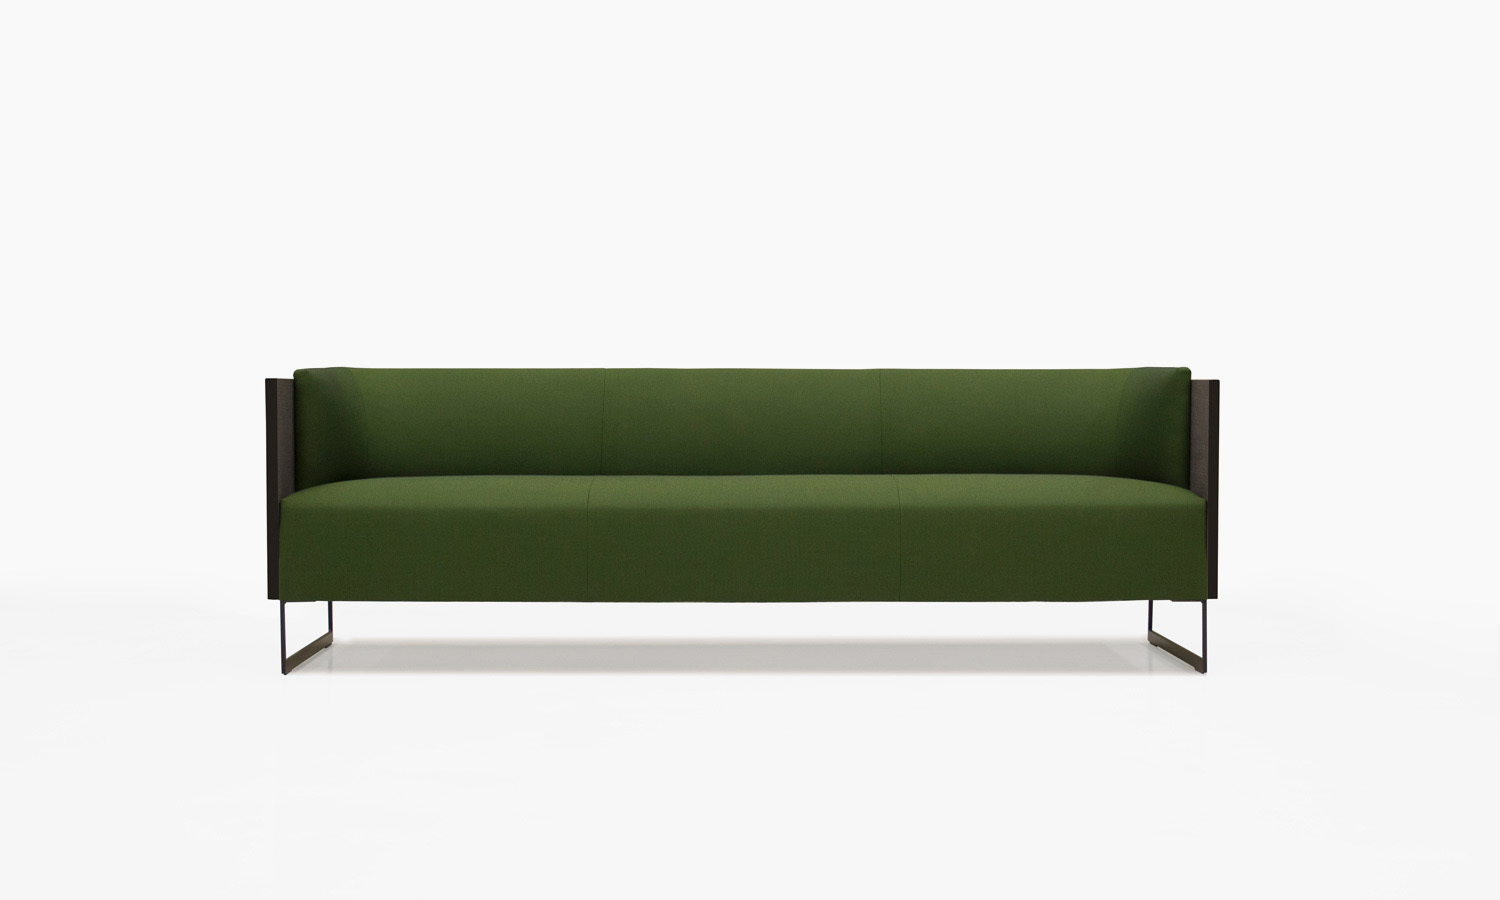 Joquer Deck Sofa Contract